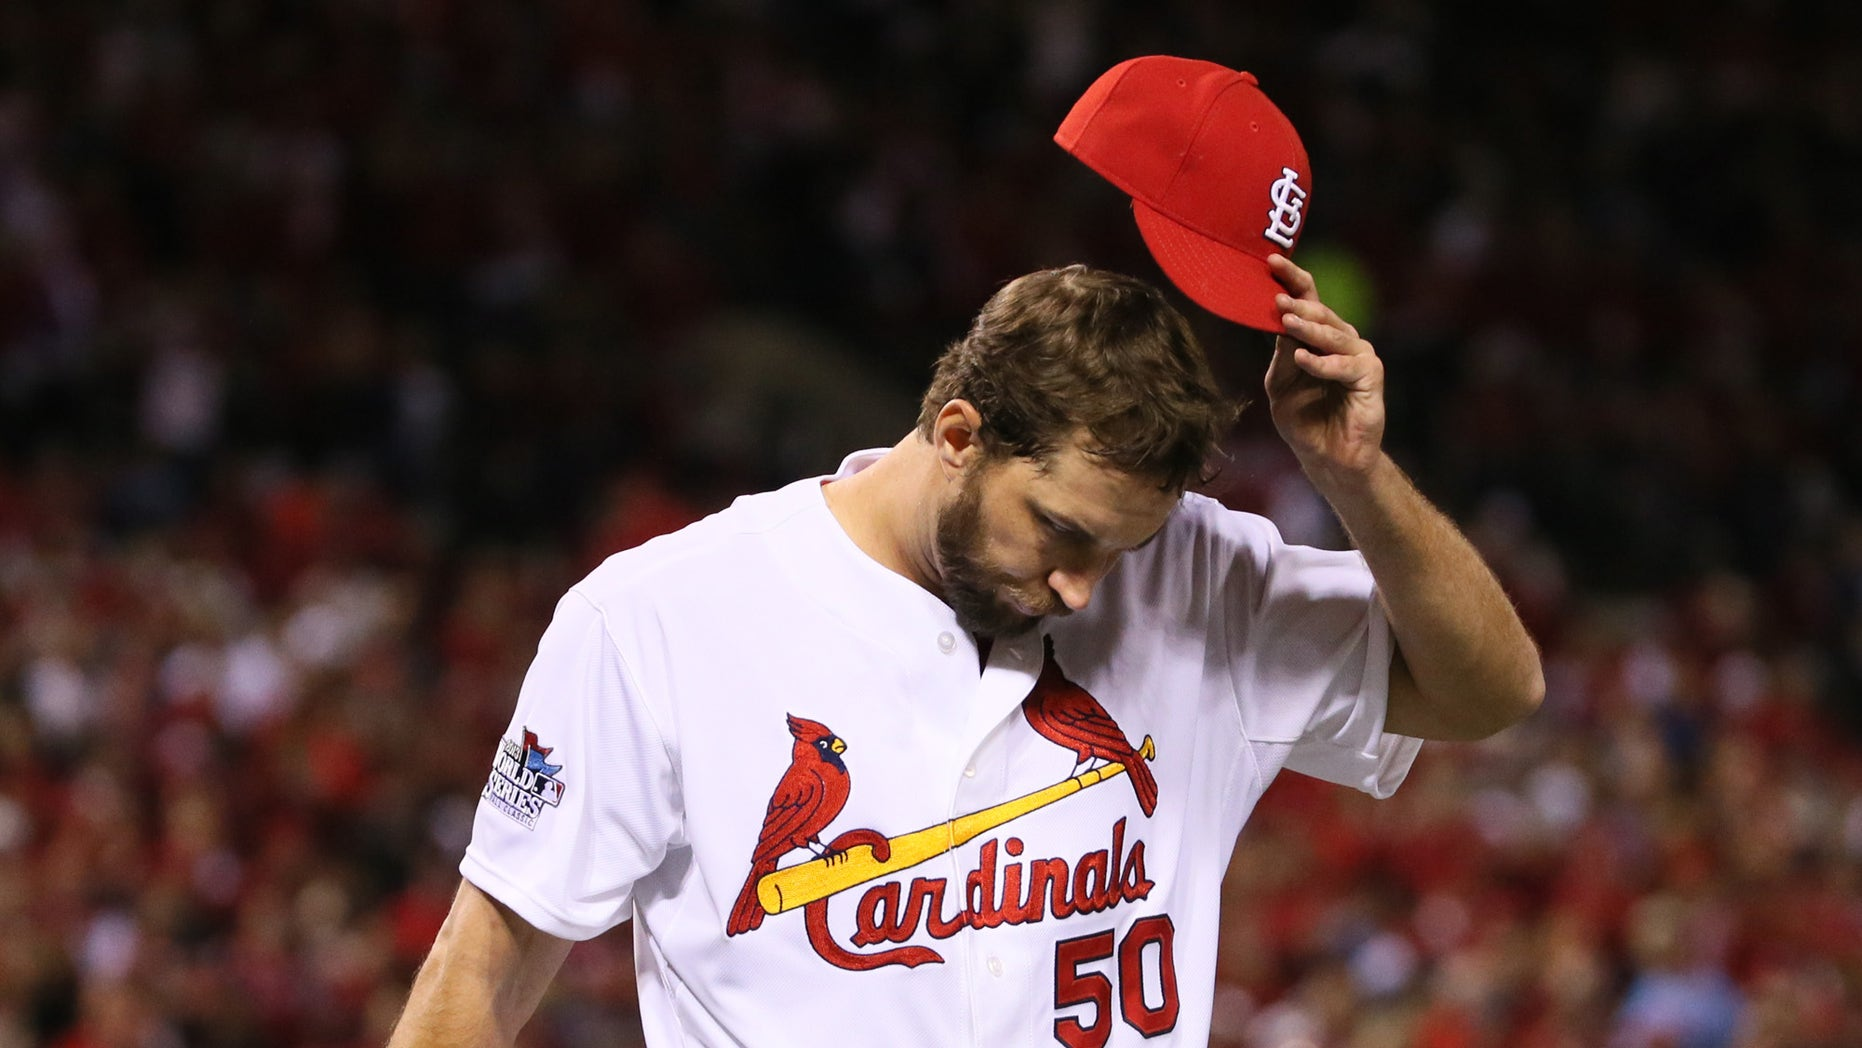 St. Louis Cardinals starting pitcher Adam Wainwright returns to the dugout after allowing two runs in the seventh inning during Game 5 of the World Series between the St. Louis Cardinals and the Boston Red Sox on Monday, Oct. 28, 2013, at Busch Stadium in St. Louis.  (AP Photo/St. Louis Post-Dispatch, Chris Lee)